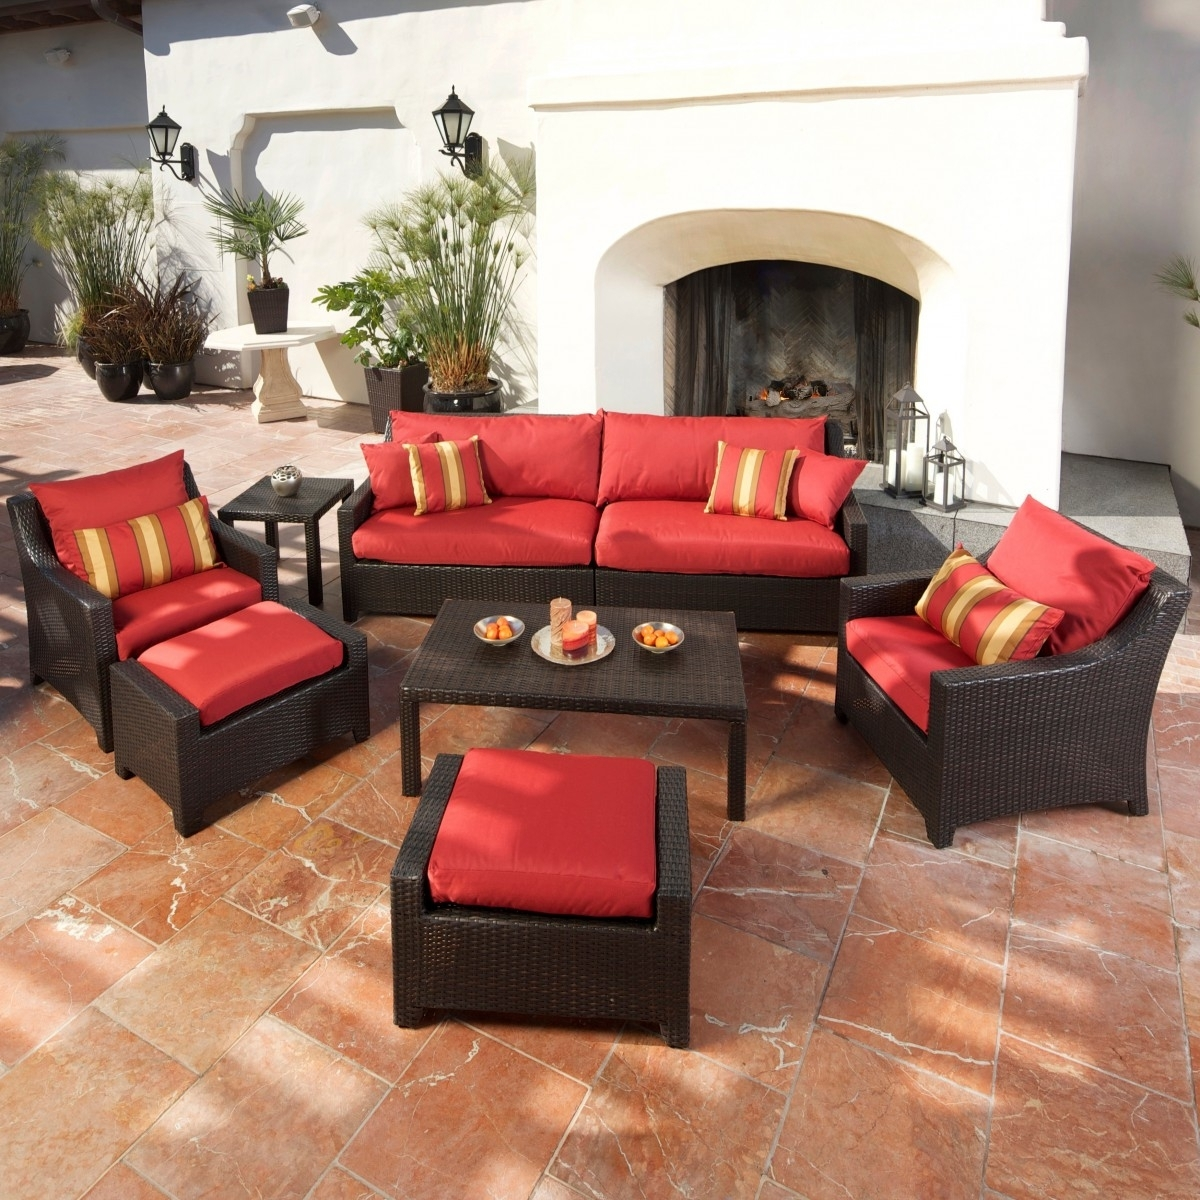 Cantina 7 Piece Sofa Seating Set With Chairs, Ottomans, Side Table Throughout Recent Patio Conversation Sets With Ottomans (View 4 of 20)